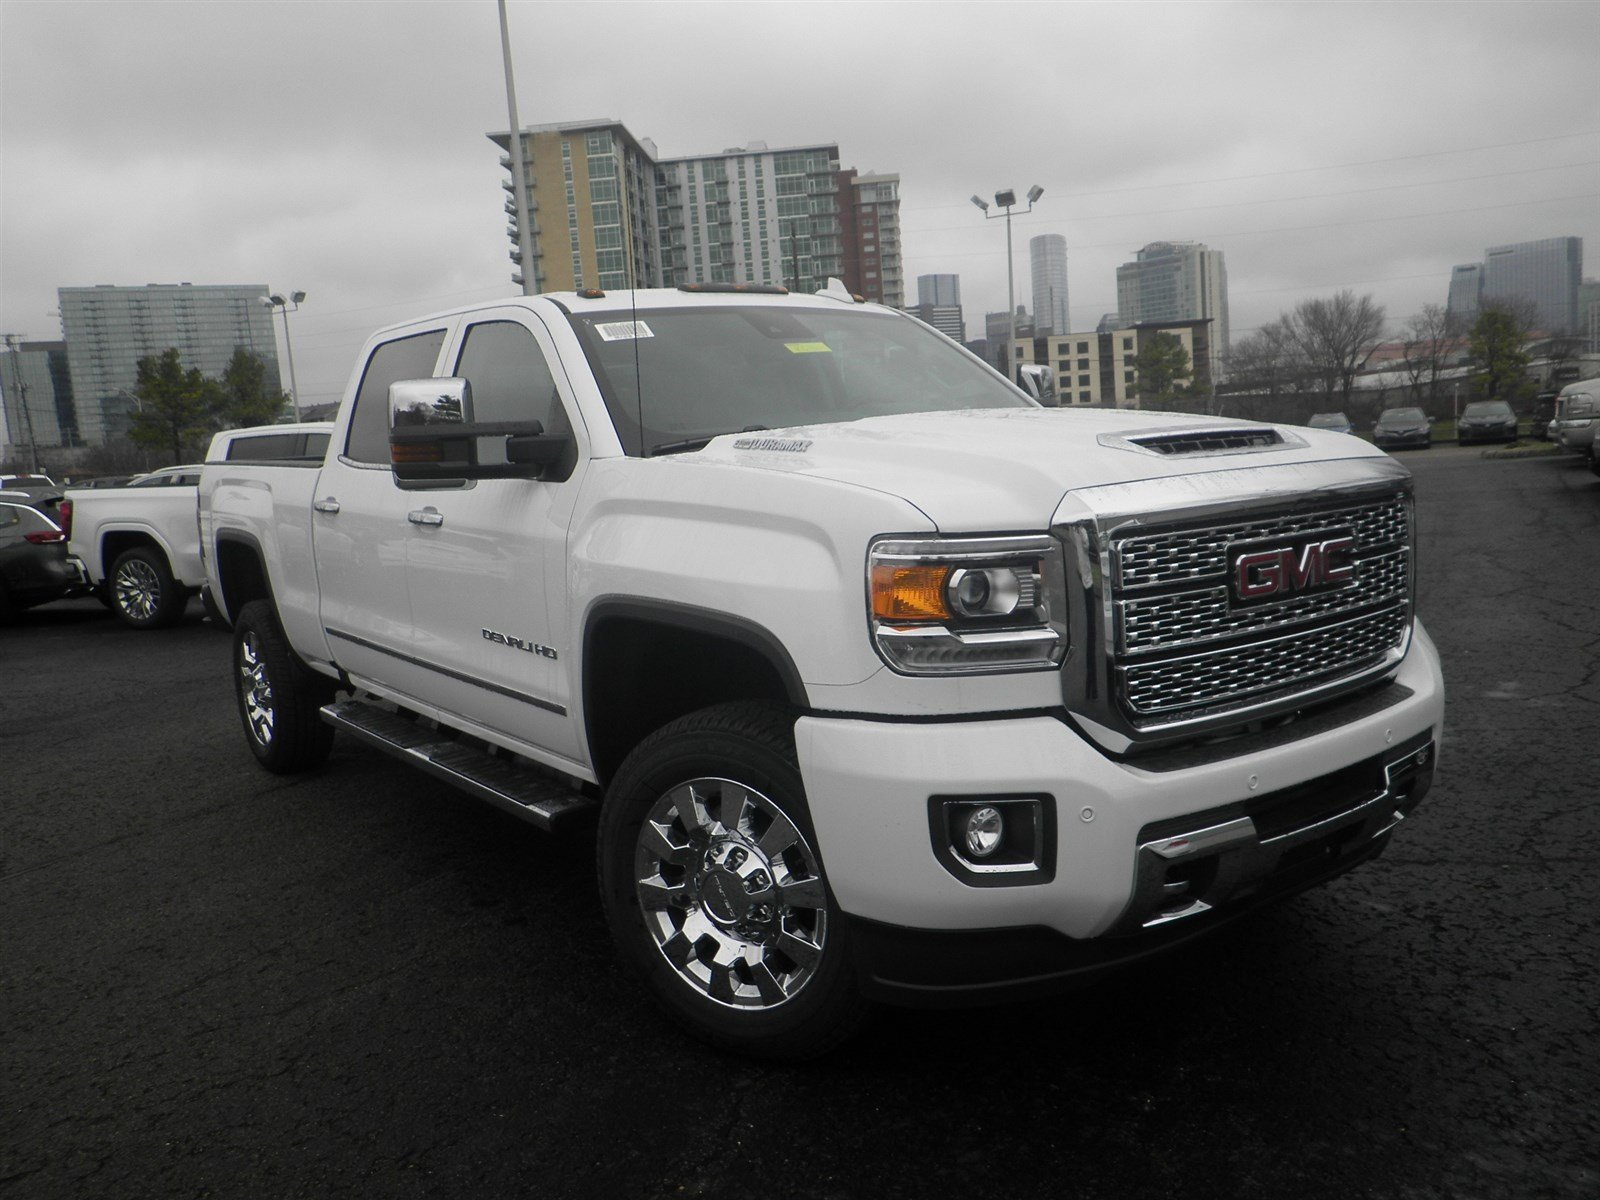 New 2019 Gmc Sierra 2500hd Denali Crew Cab In Nashville Kg301